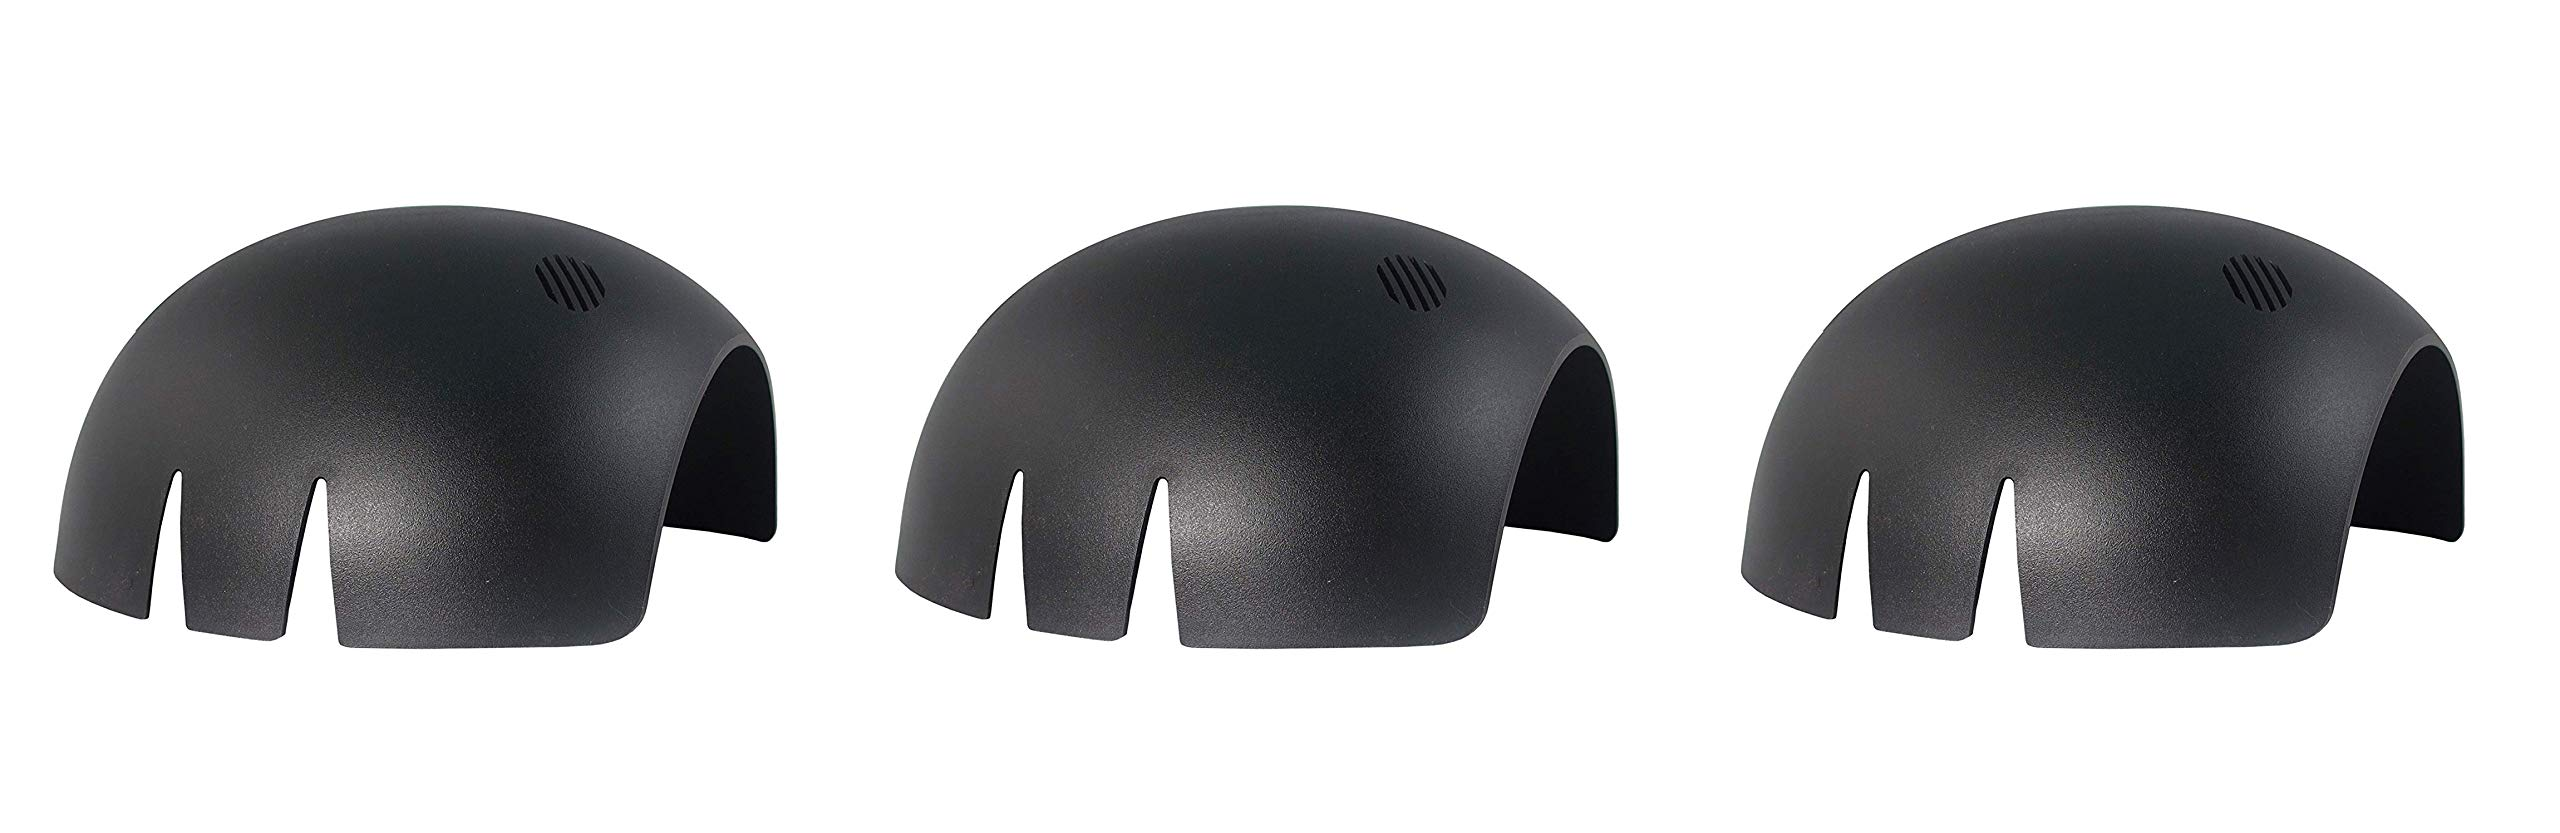 ERB Safety Products 19404 Create a Cap Shell without Foam Pad, Size: 6 1/2-8, Black (Тhrее Pаck)